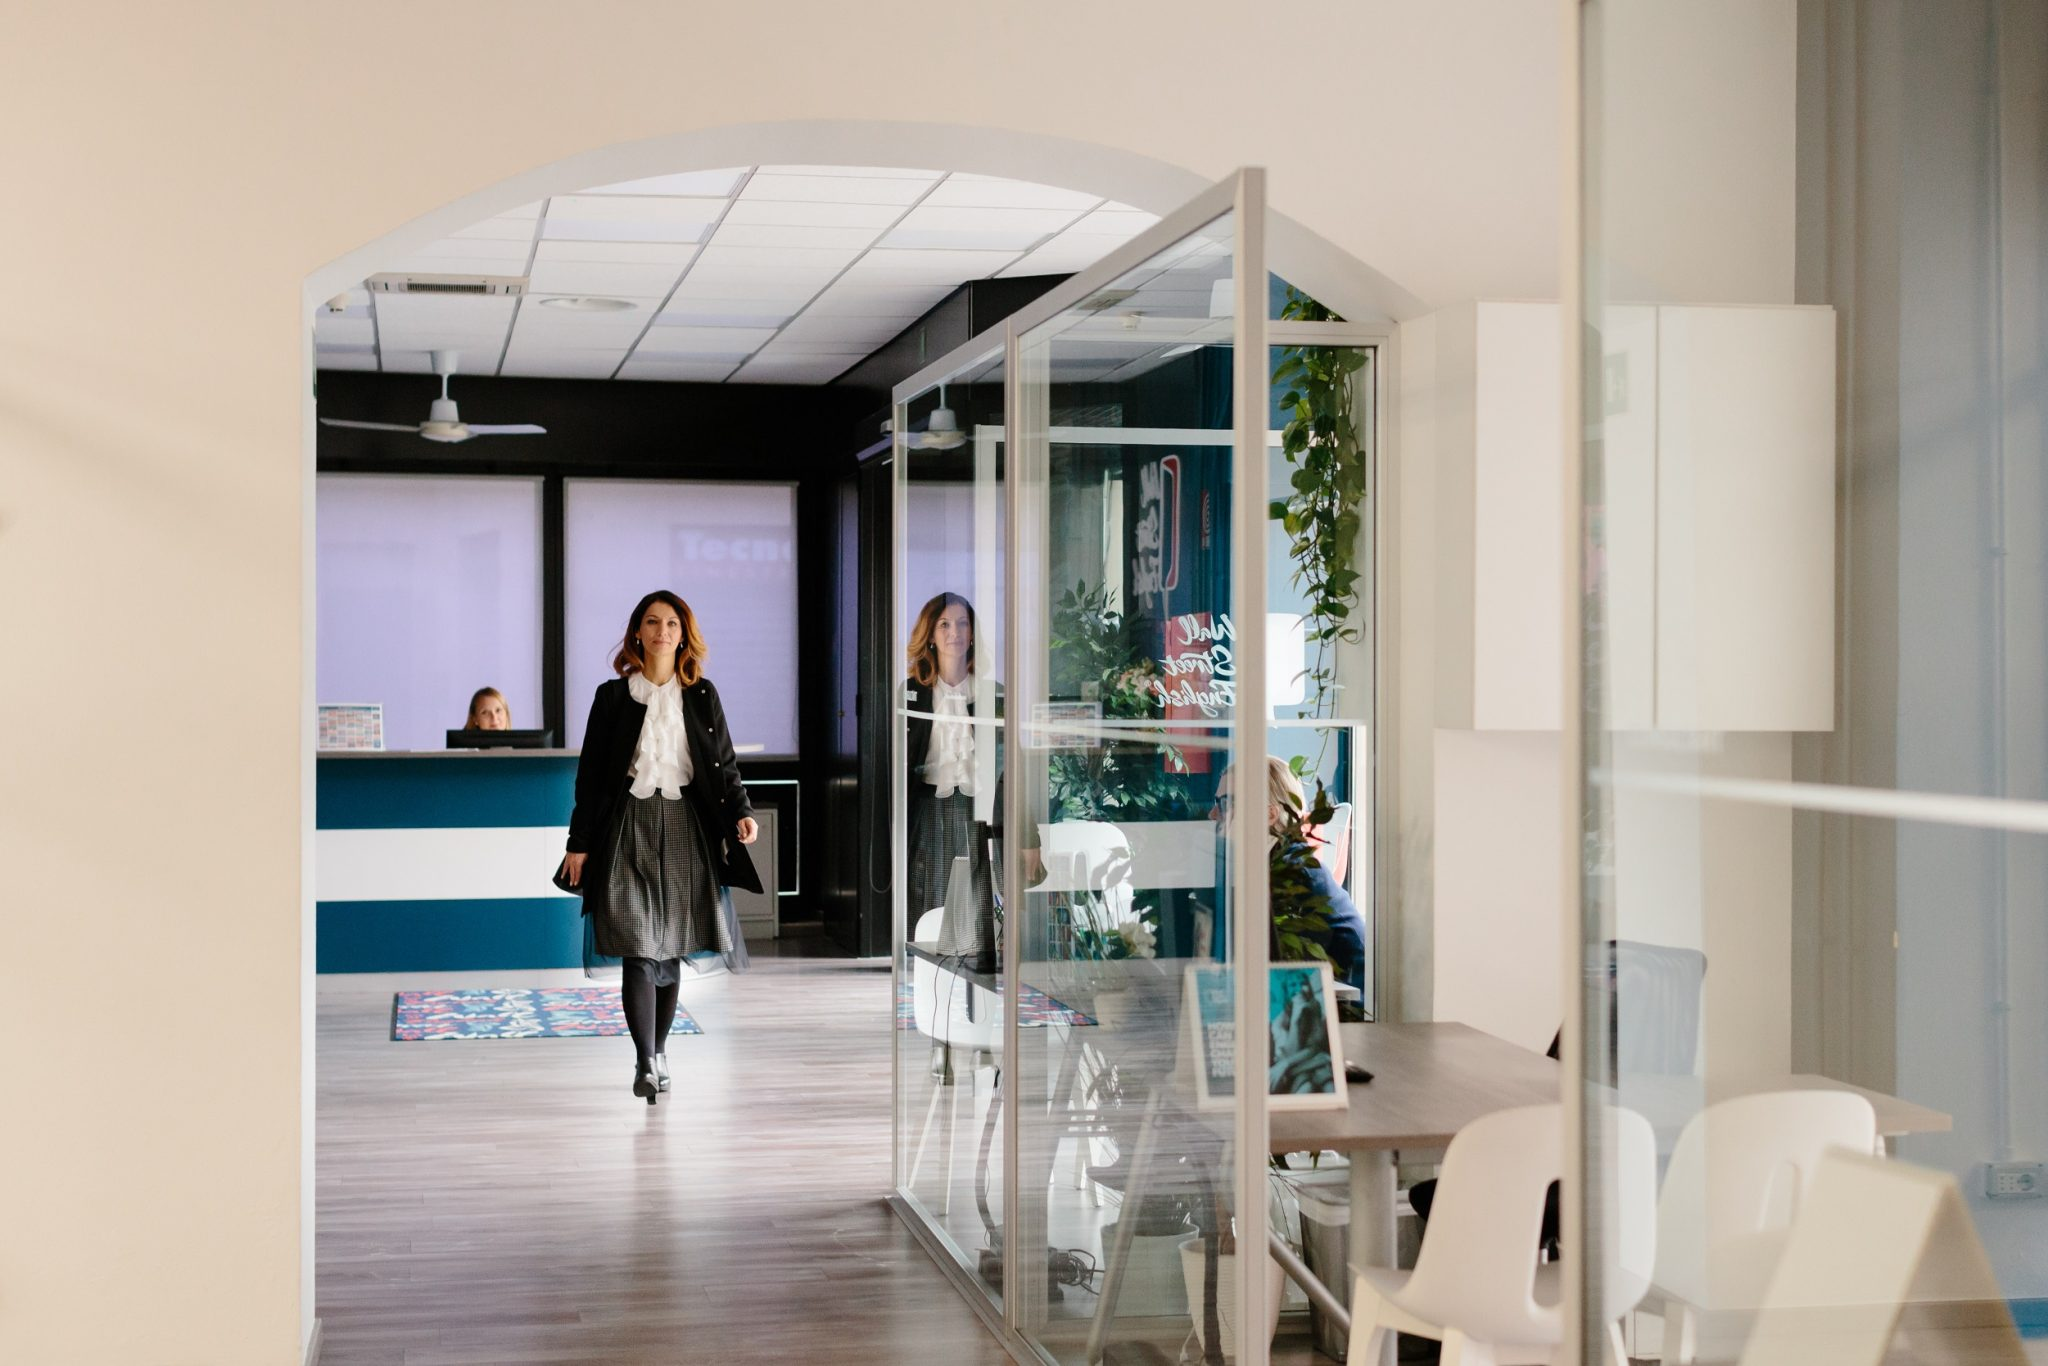 Wall Street English Italy Franchisee walking in center